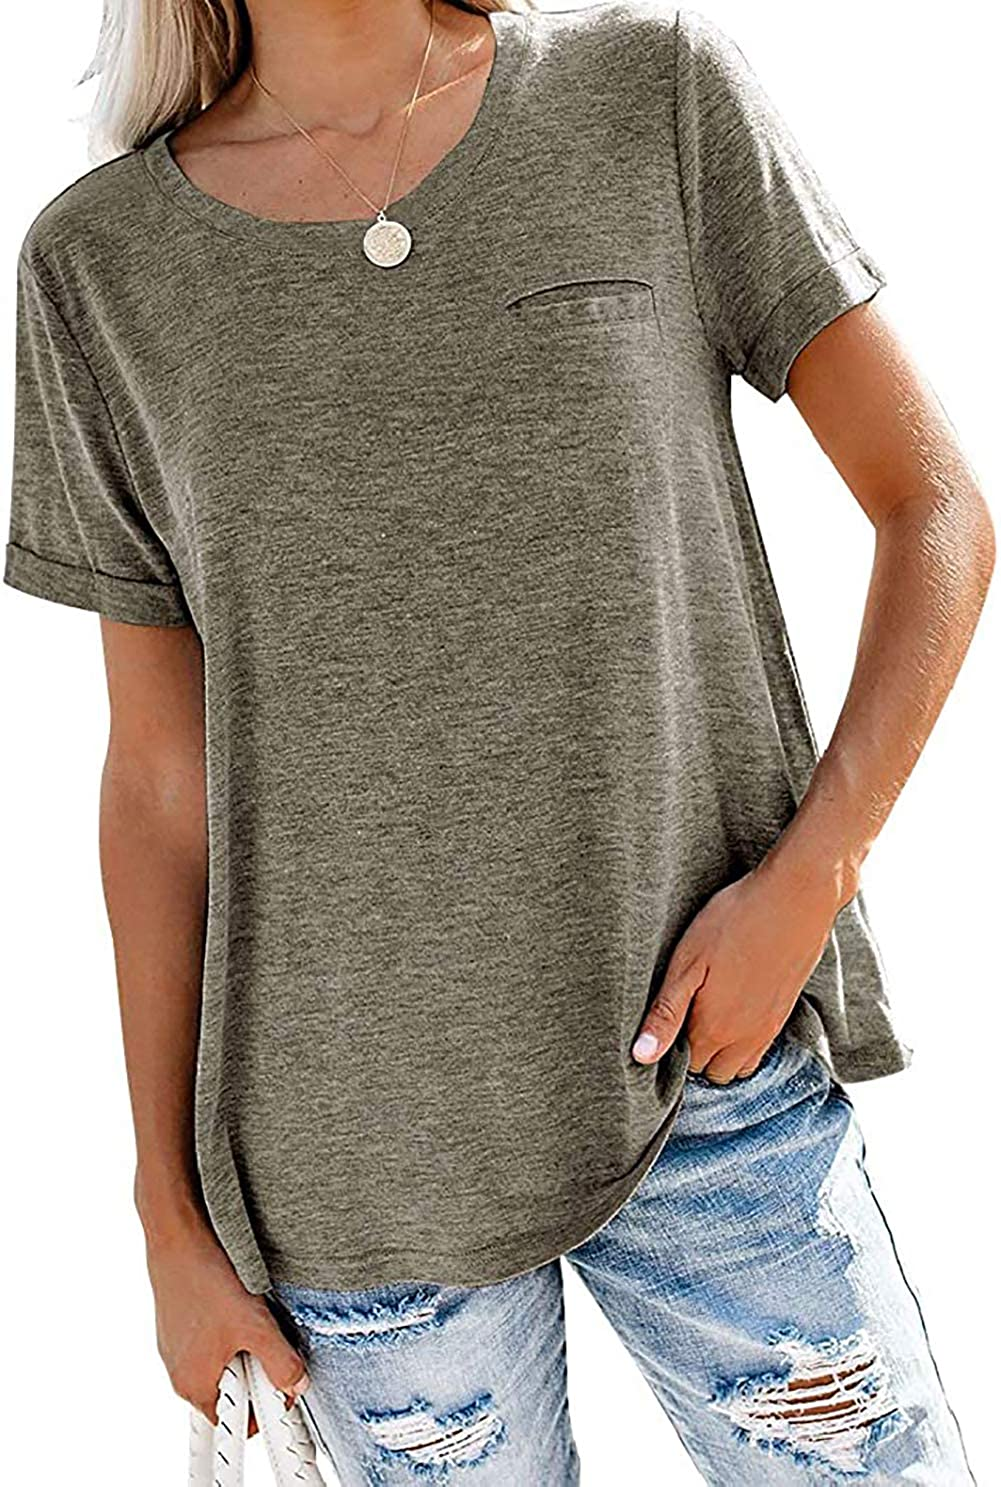 Angerella Womens V Neck T Shirts Roll Up Sleeve Tops Casual Loose Tees with Pocket